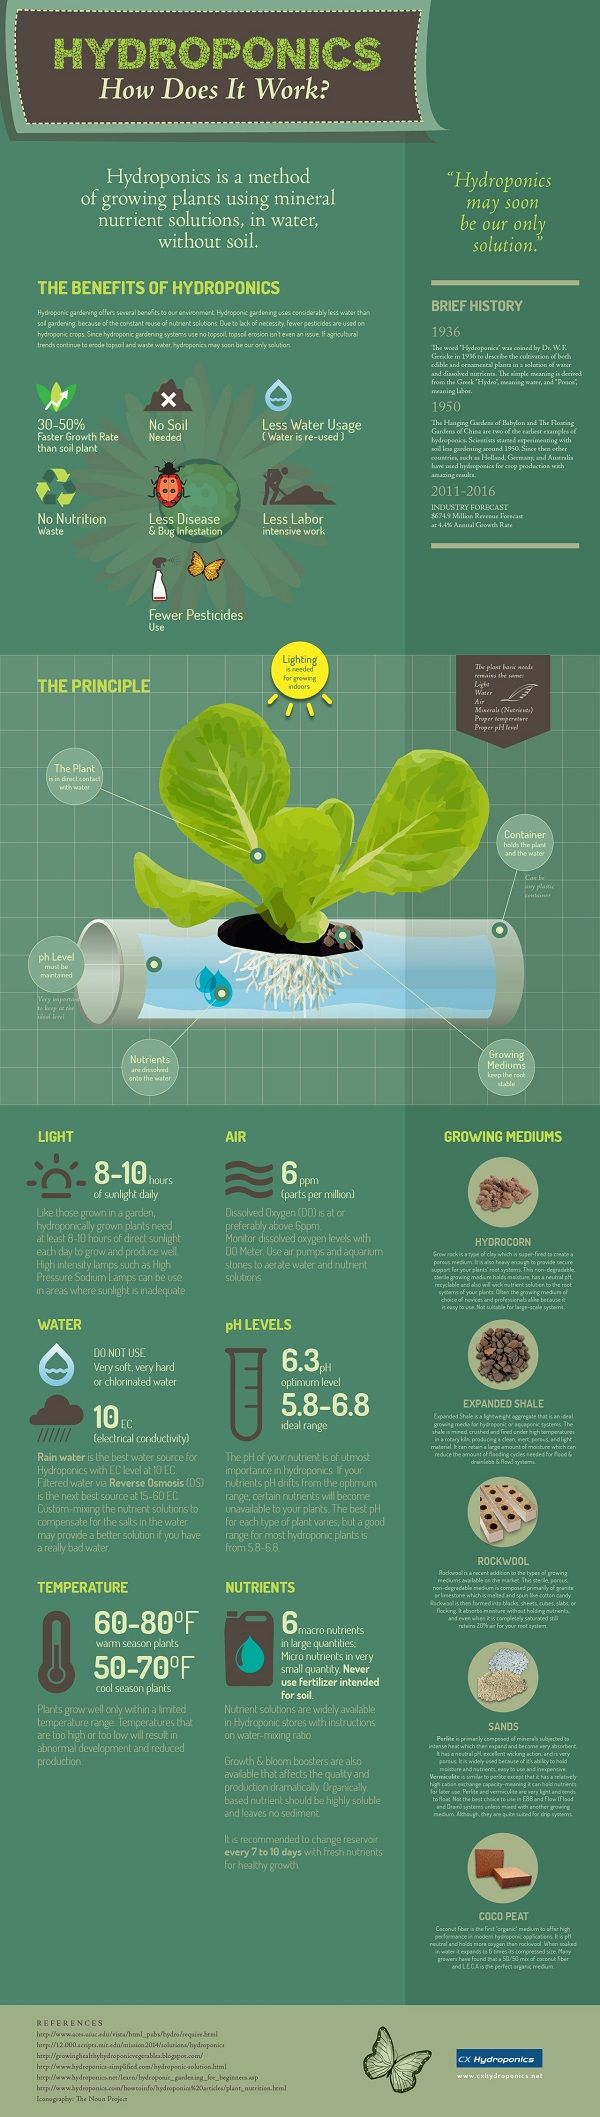 Hydroponic Gardening Basics: Learn All About This Gardening Method Here! http://homeandgardenamerica.com/basics-of-hydroponic-gardening